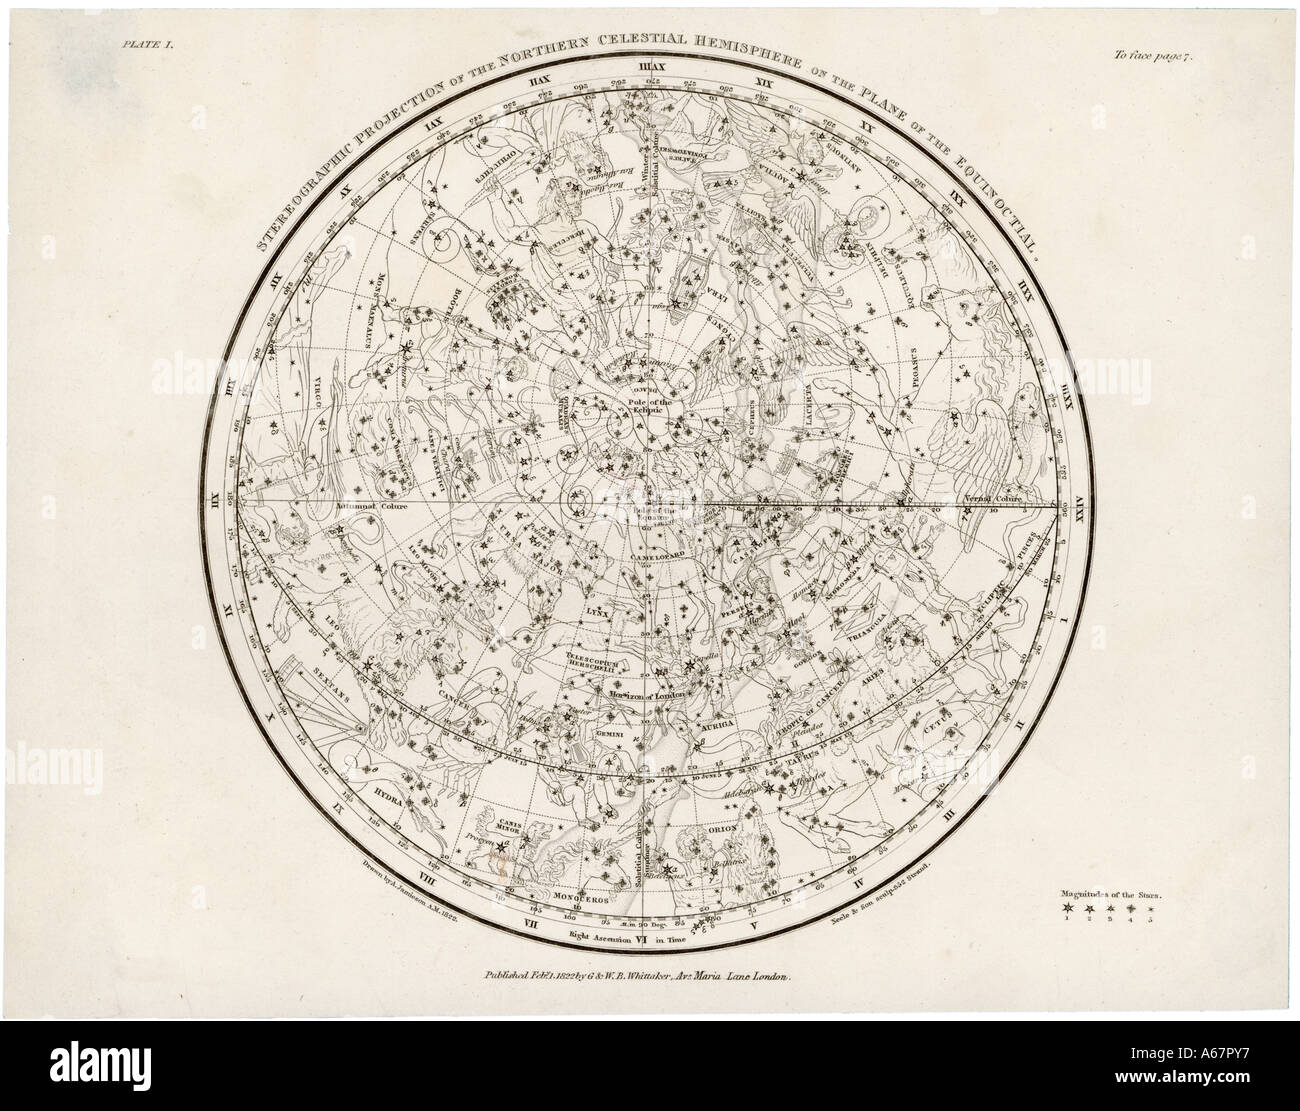 Star Map Stock Photos & Star Map Stock Images - Alamy